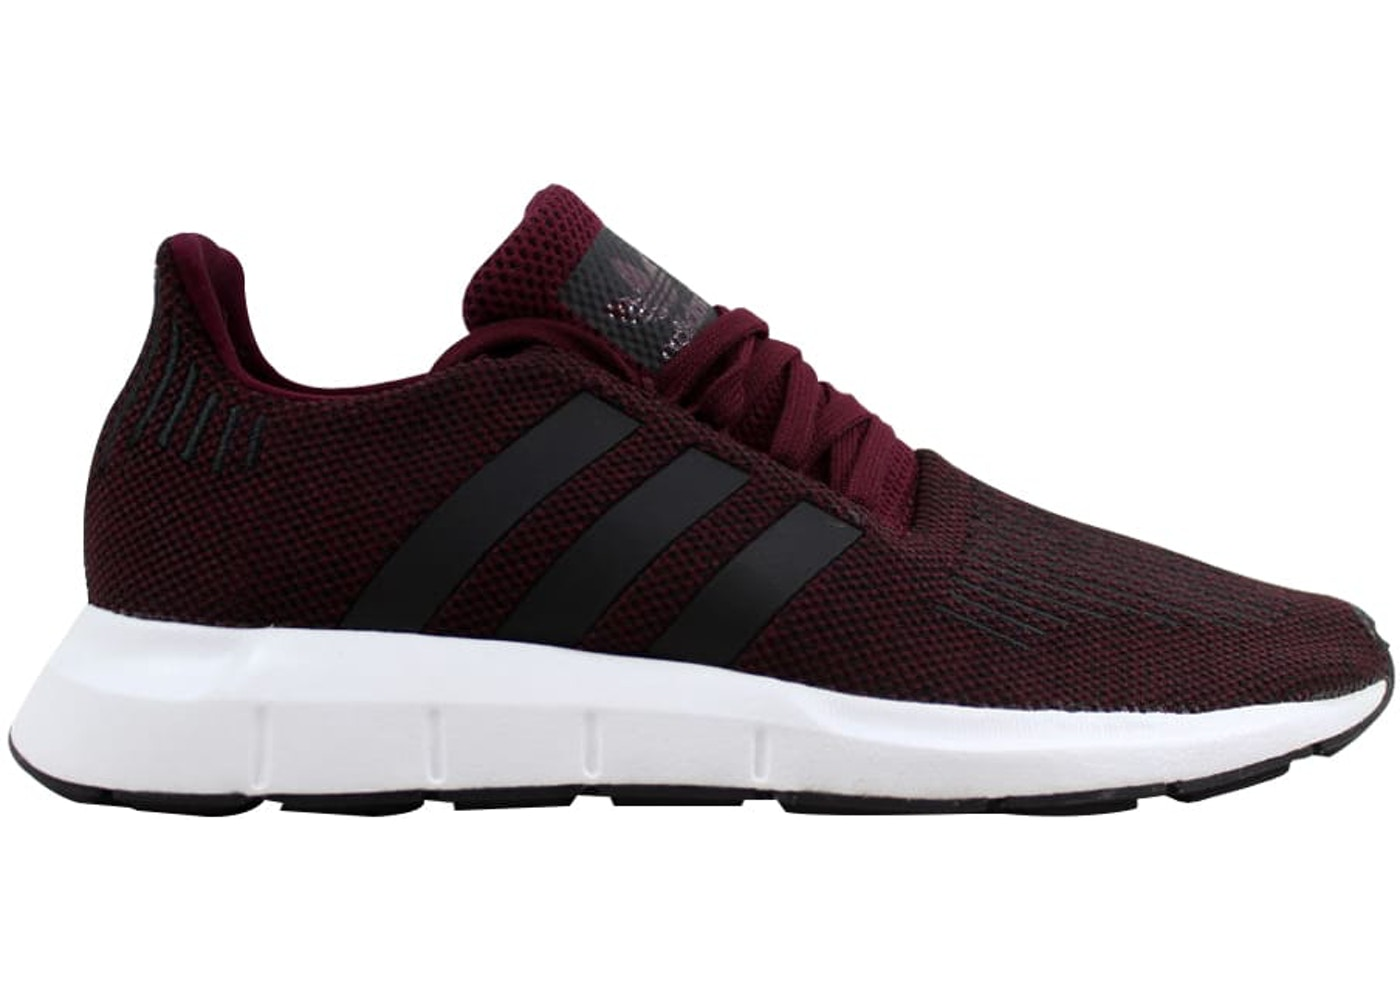 deeefe25bf45b Sell. or Ask. Size  8.5. View All Bids. adidas Swift Run Maroon Black-White